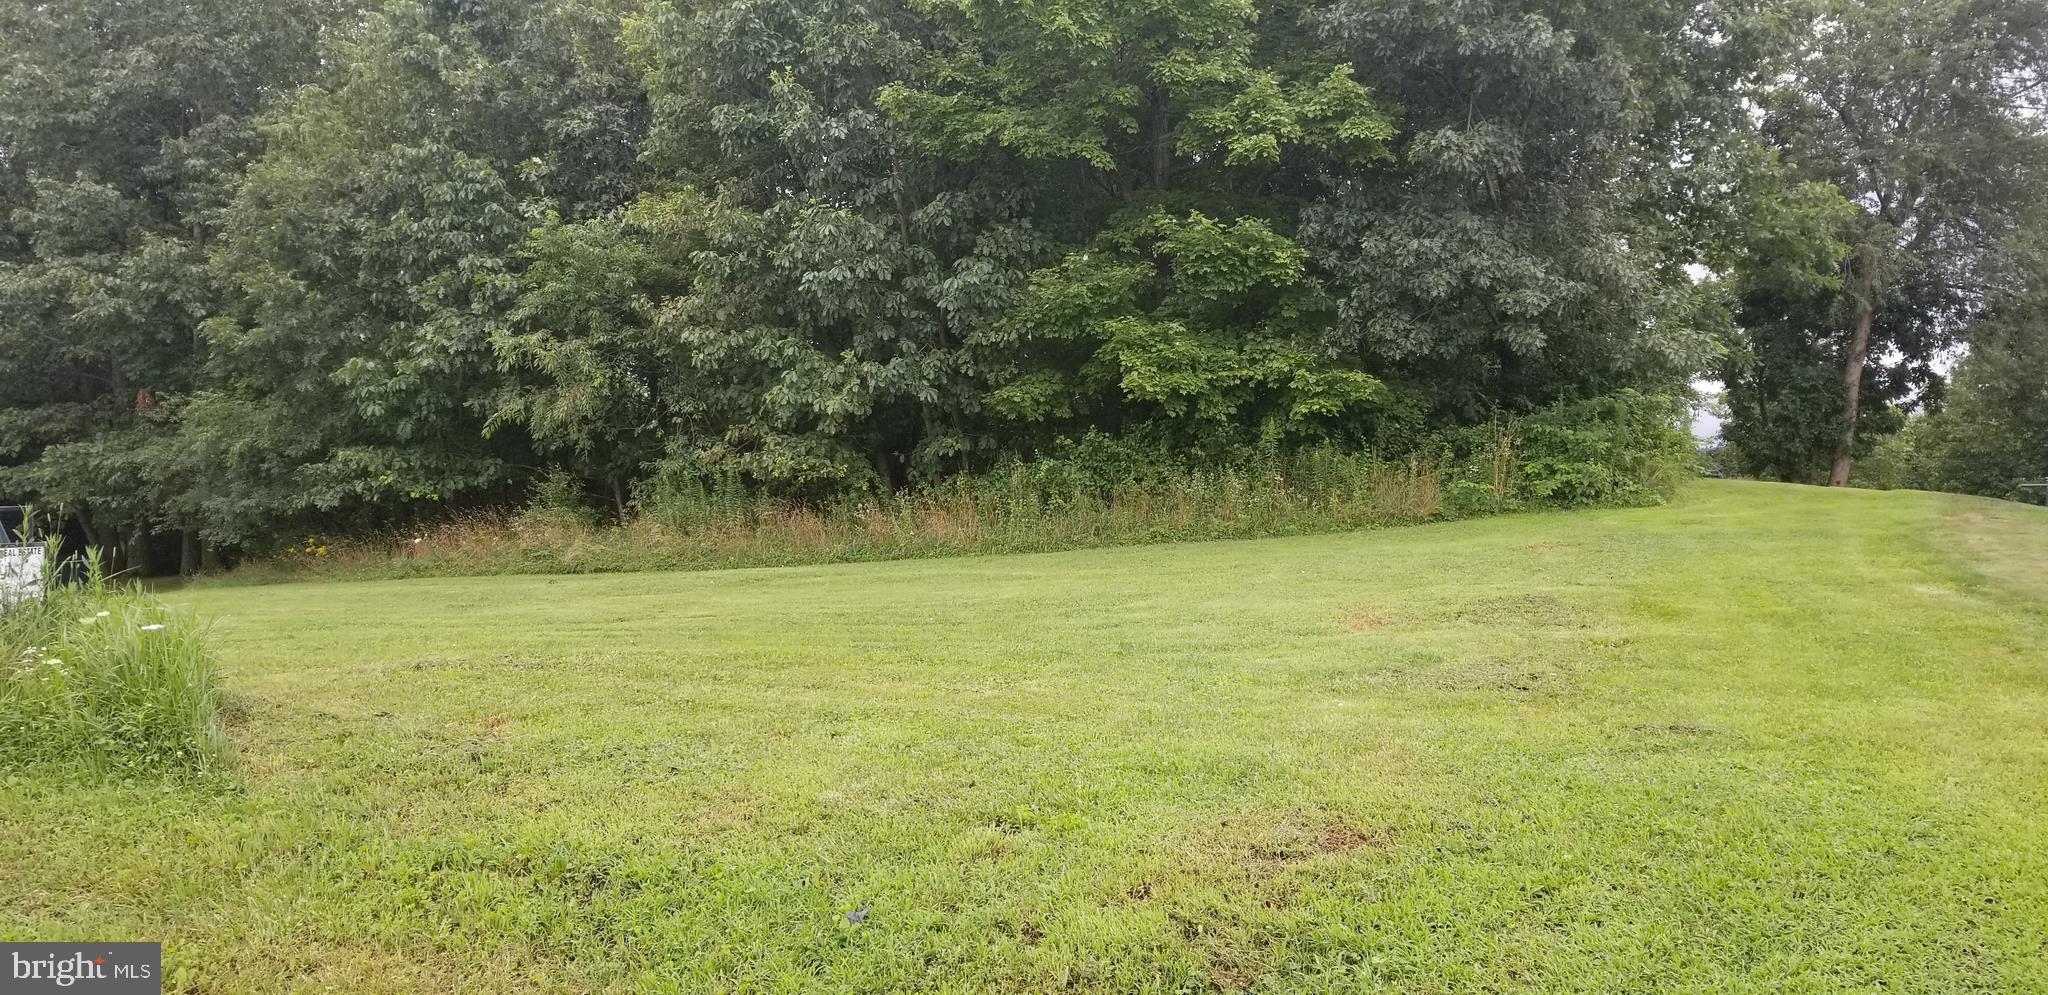 Lot 123 LINCOLN LANE, MILLERSBURG, PA 17061